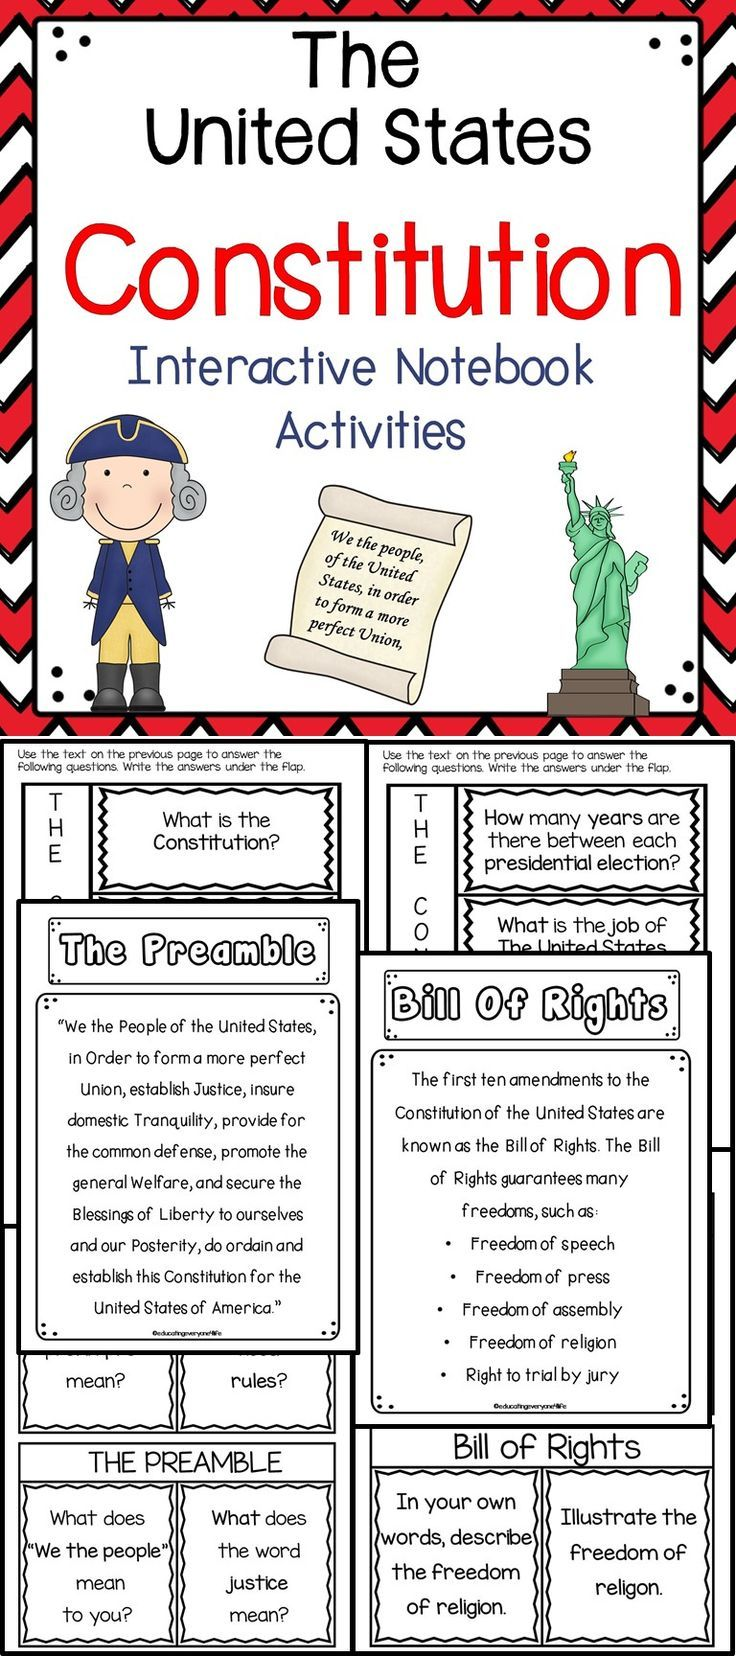 Classroom Ideas and Classroom Resources - The Constitution - Teach your students all about the United States Constitution with these fun and engaging interactive notebook activities.